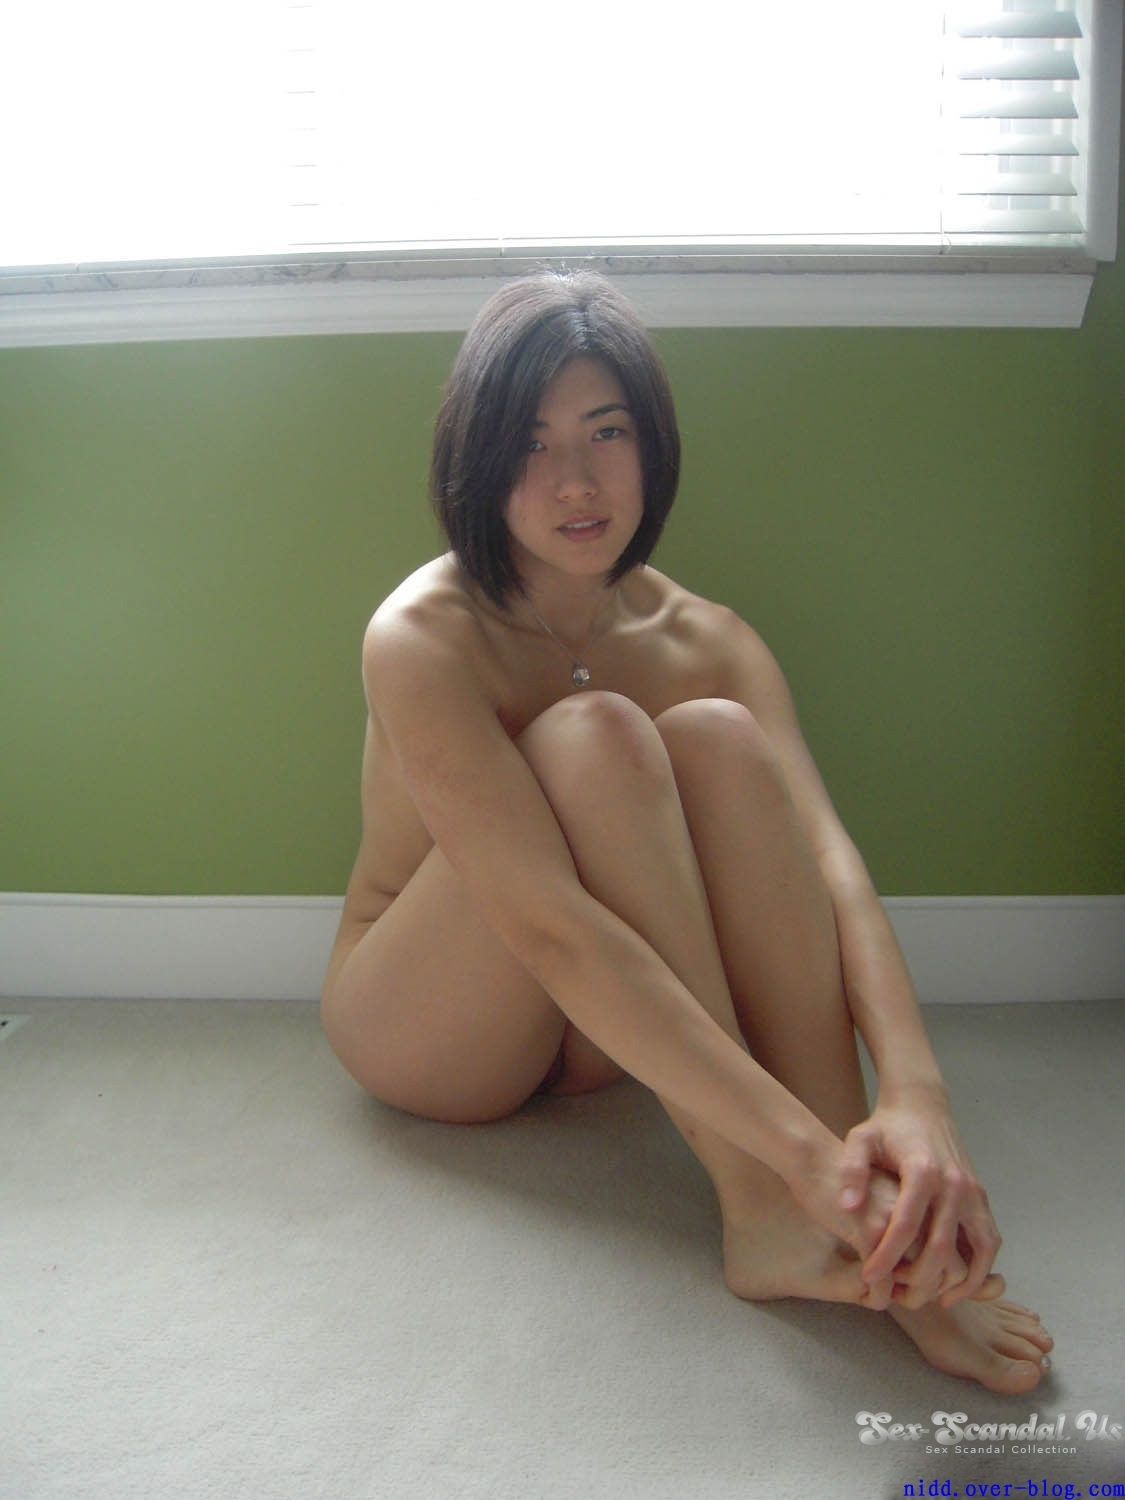 Naked images of american girls having sex — photo 5